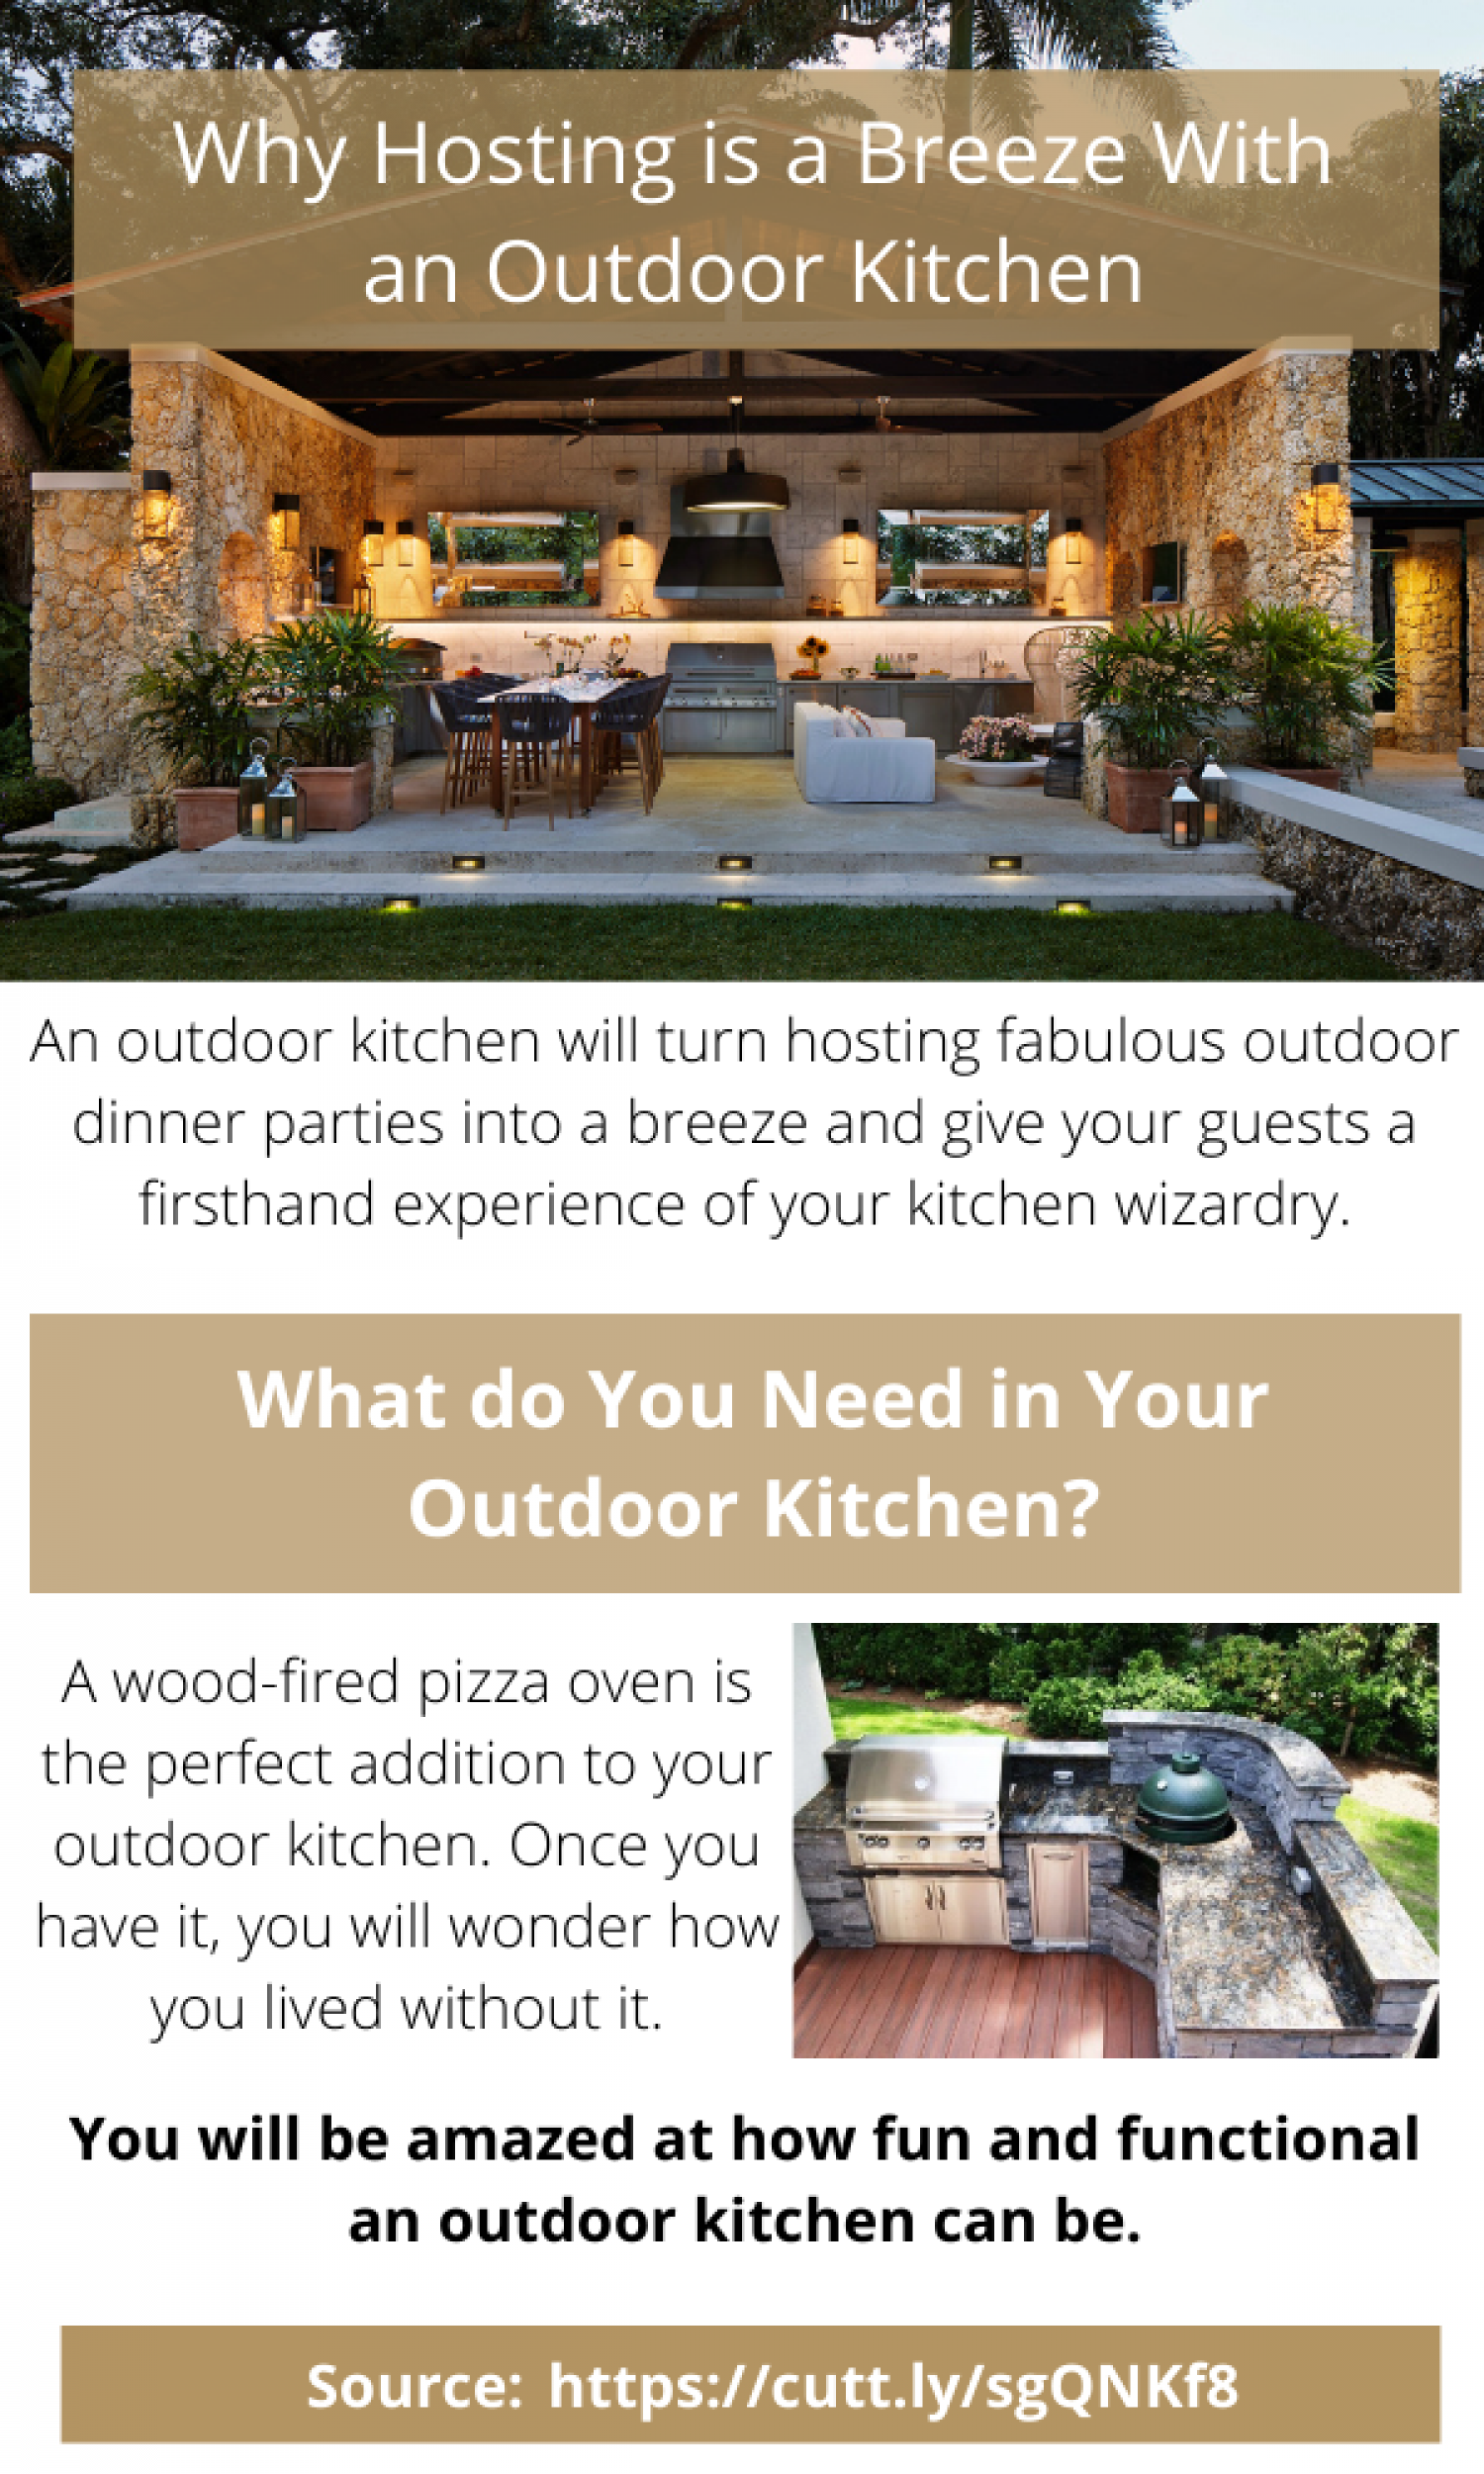 Hosting Fabulous Outdoor Dinner Parties Into A Breeze Infographic